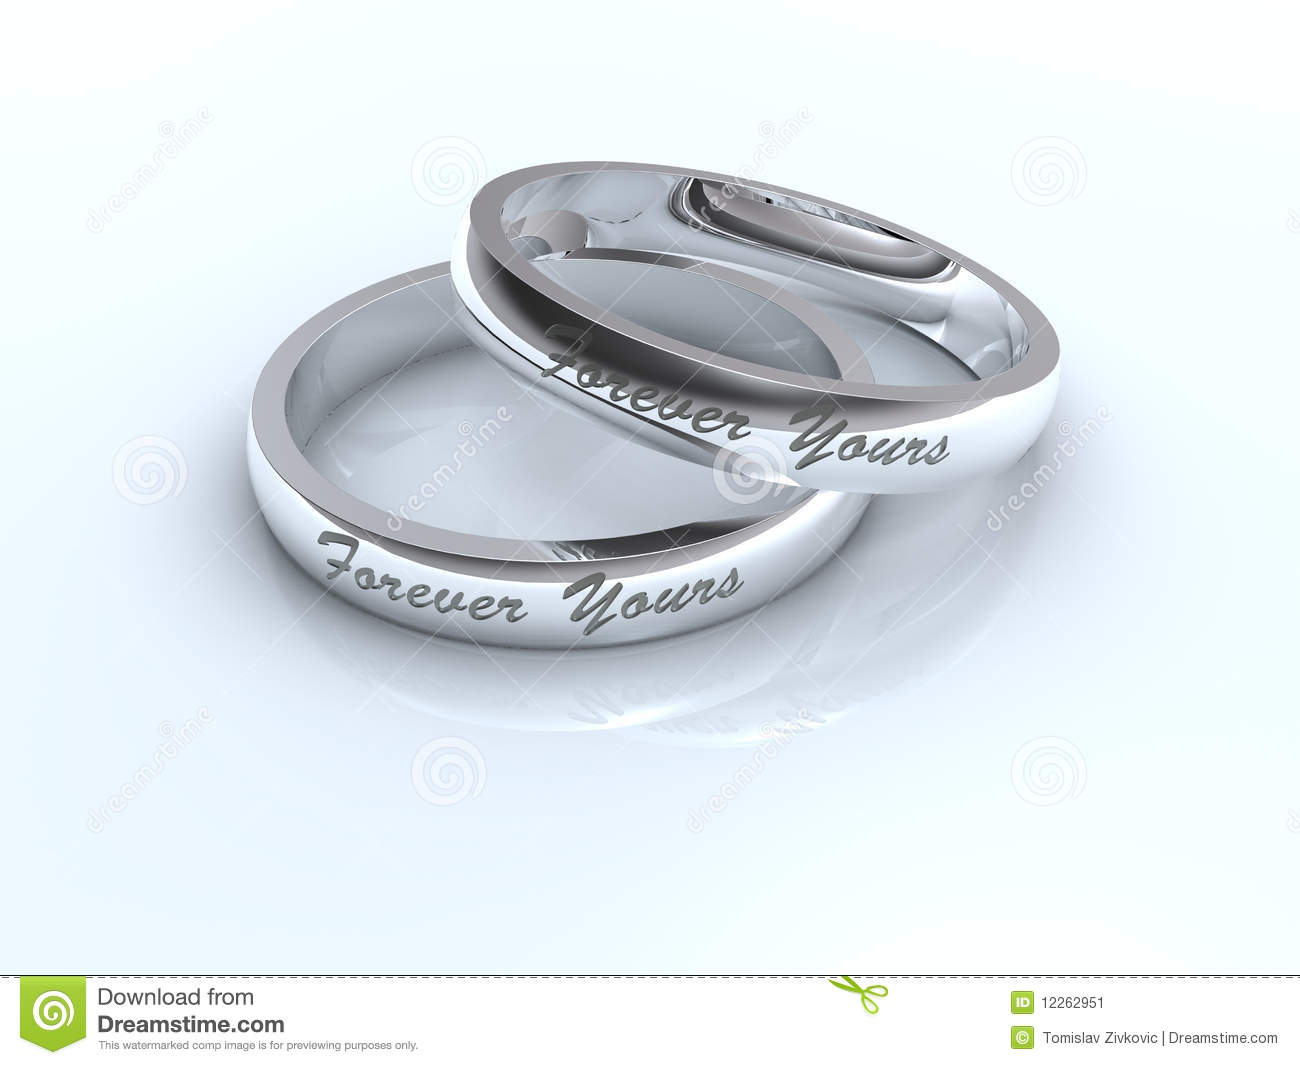 ring hers cut rings band cz stainless his engagement steel wedding heart sterling women s men matching pcs sets silver